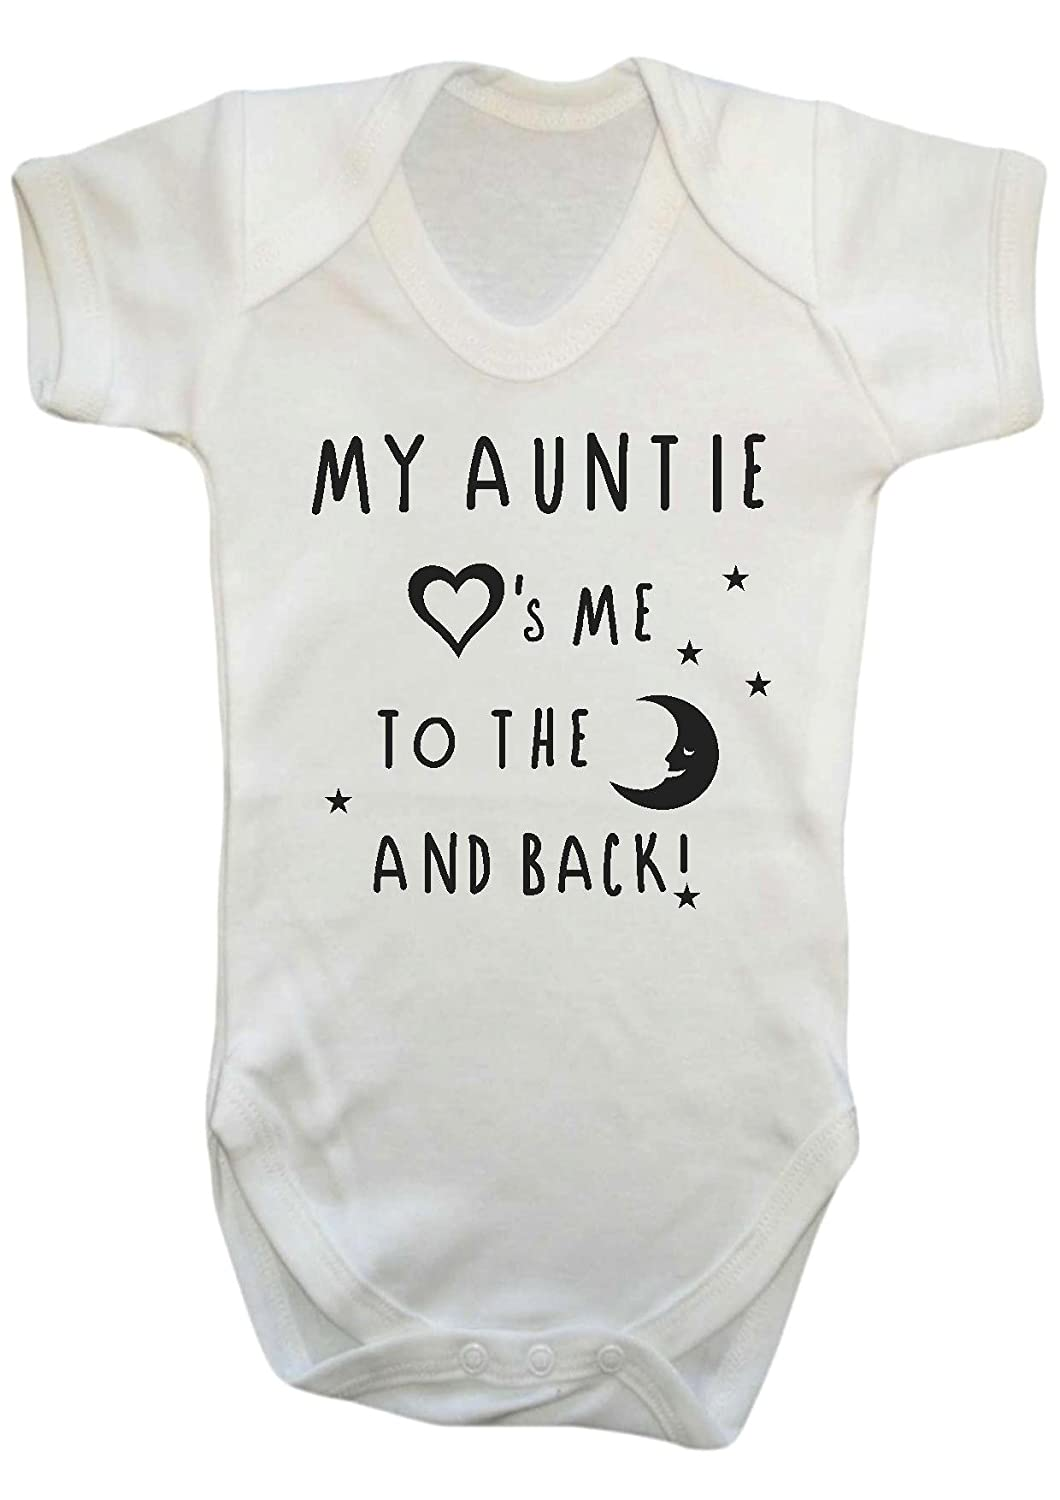 Danni Rose My Auntie loves me to the moon and back baby Vest Bodysuit boy girl (0-3) Dorn Enterprisers LTD